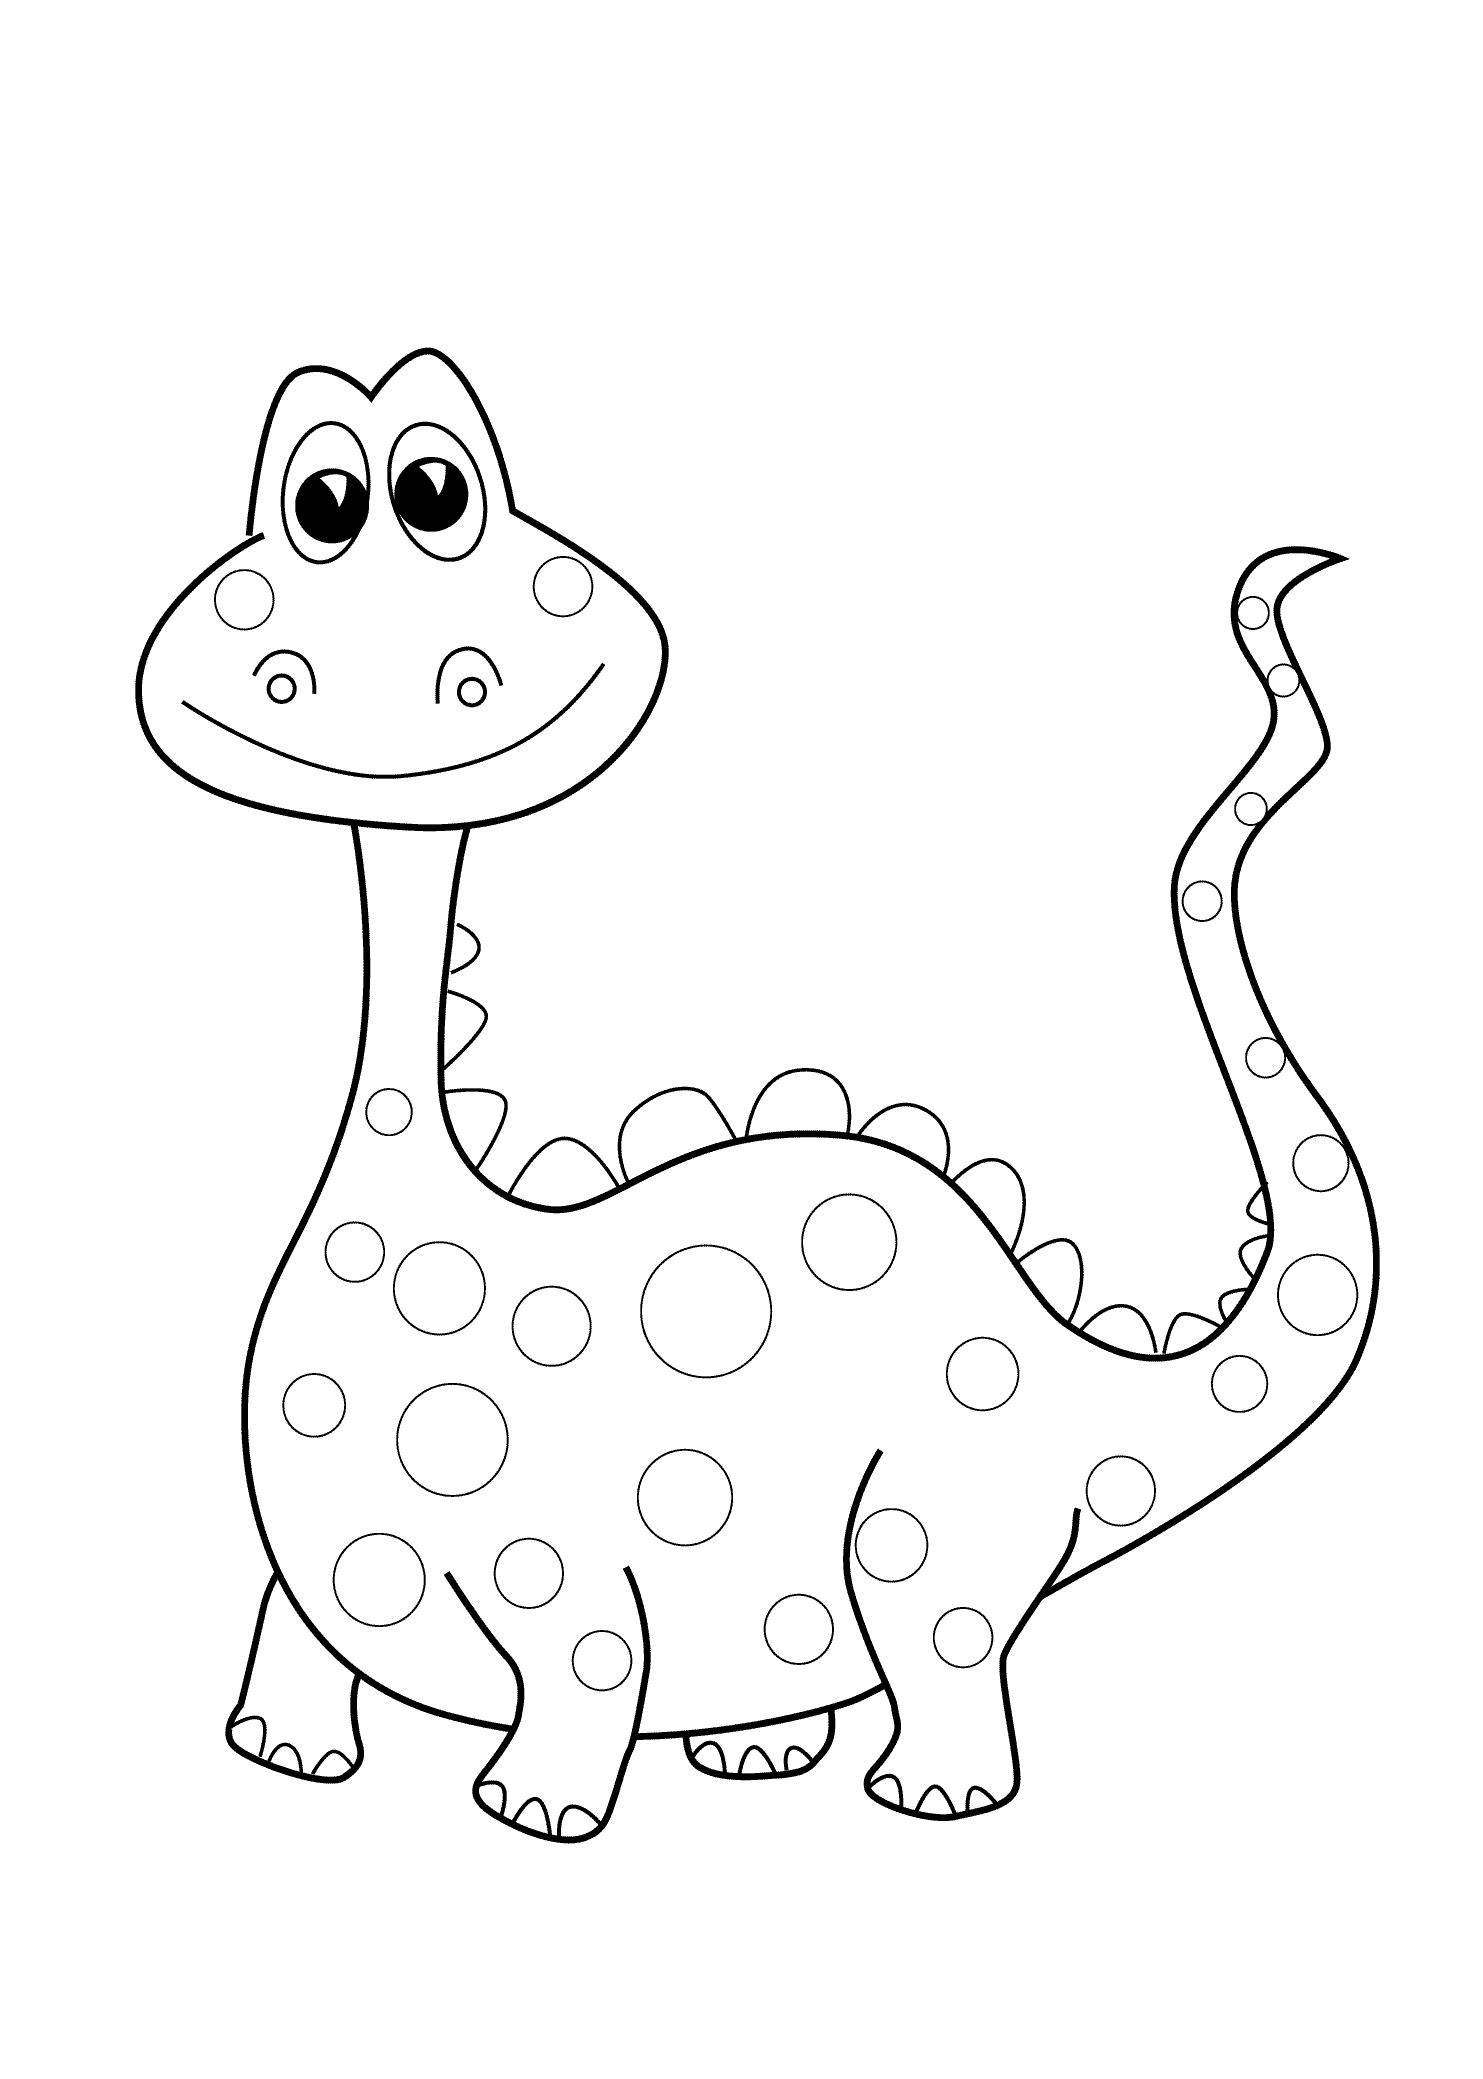 Preschool dinosaur coloring pages printable